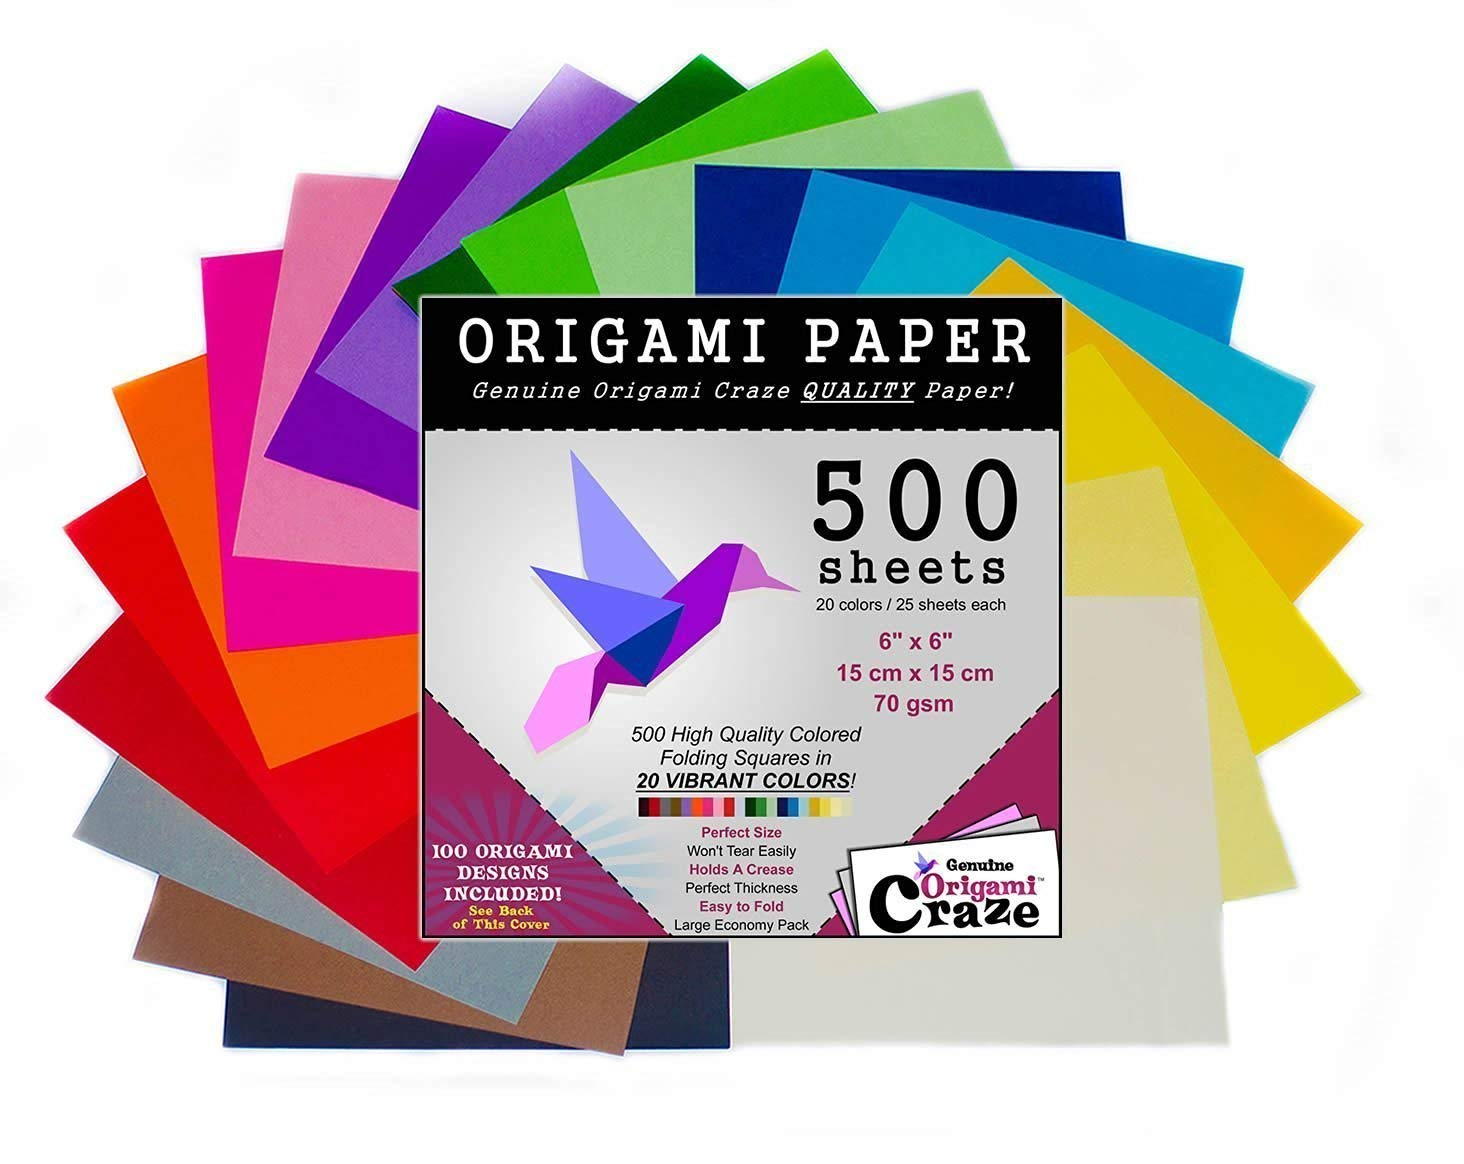 Origami Paper 500 Sheets, Premium Quality for Arts and Crafts, 6-inch Square Sheets, 20 Vivid Colors, Same Color on Both Sides, 100 Design E-Book Included (See back of the cover for download info)